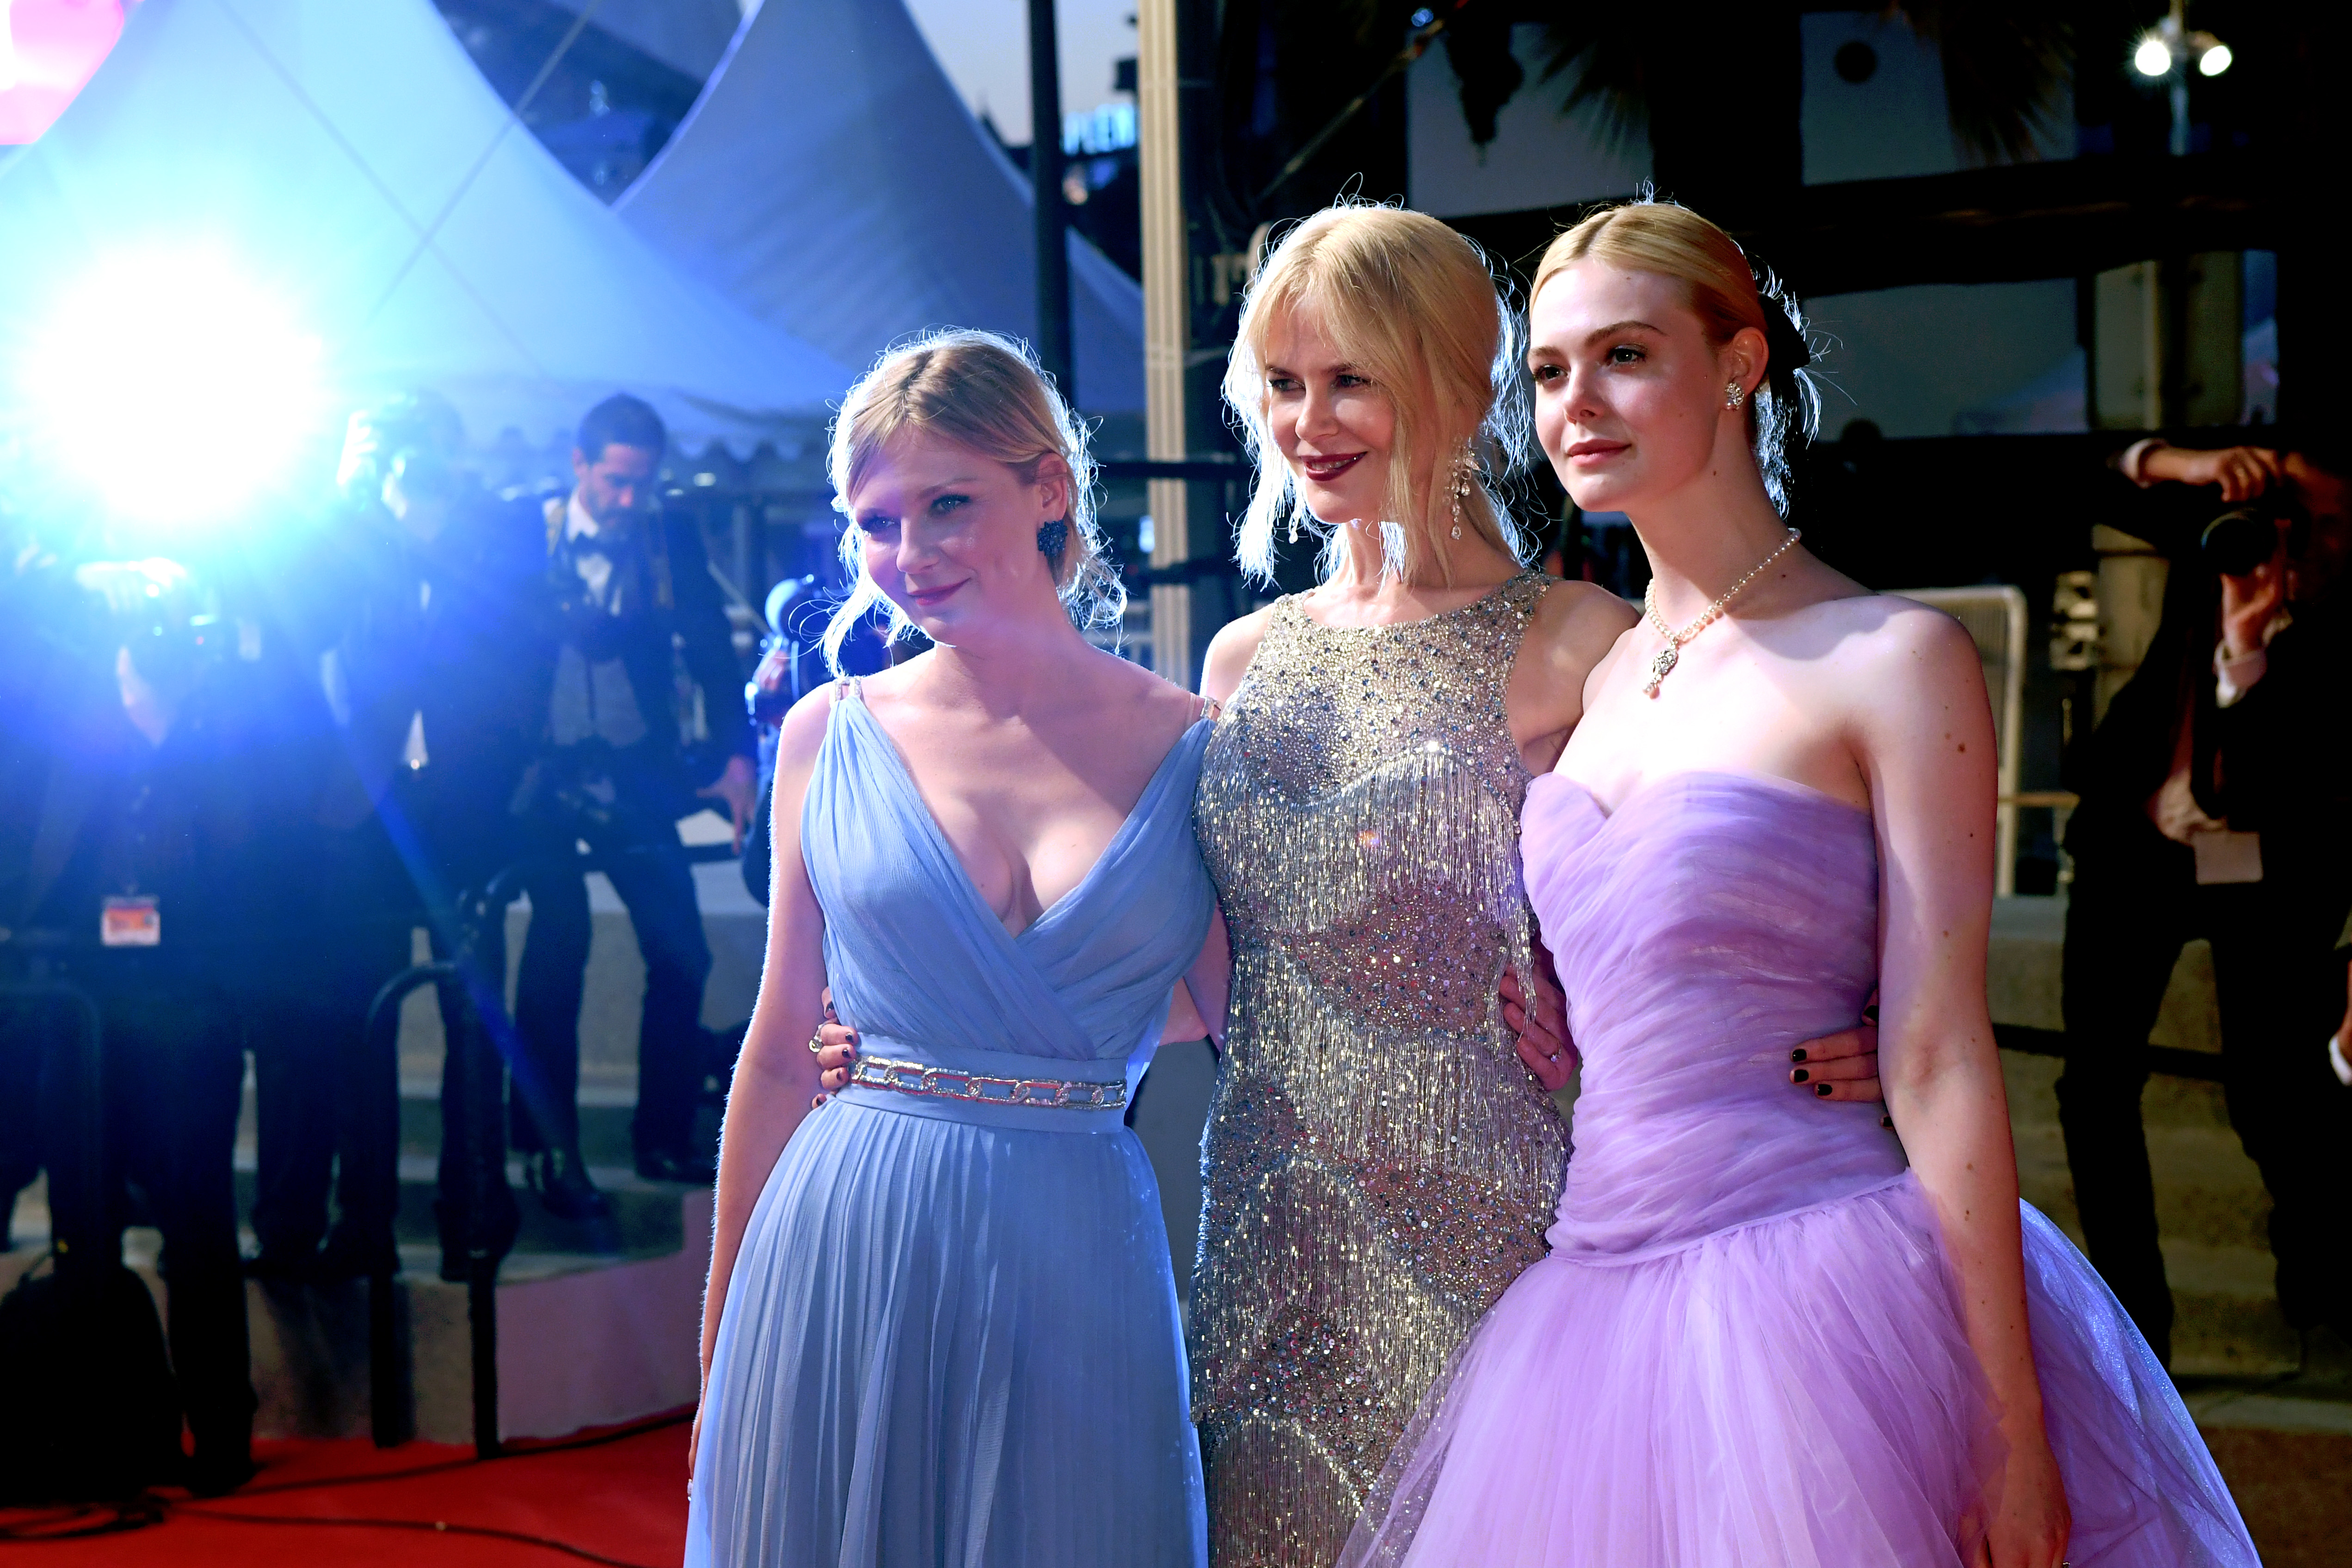 Kirsten Dunst, Nicole Kidman and Elle Fanning'The Beguiled' premiere, 70th Cannes Film Festival, France - 24 May 2017